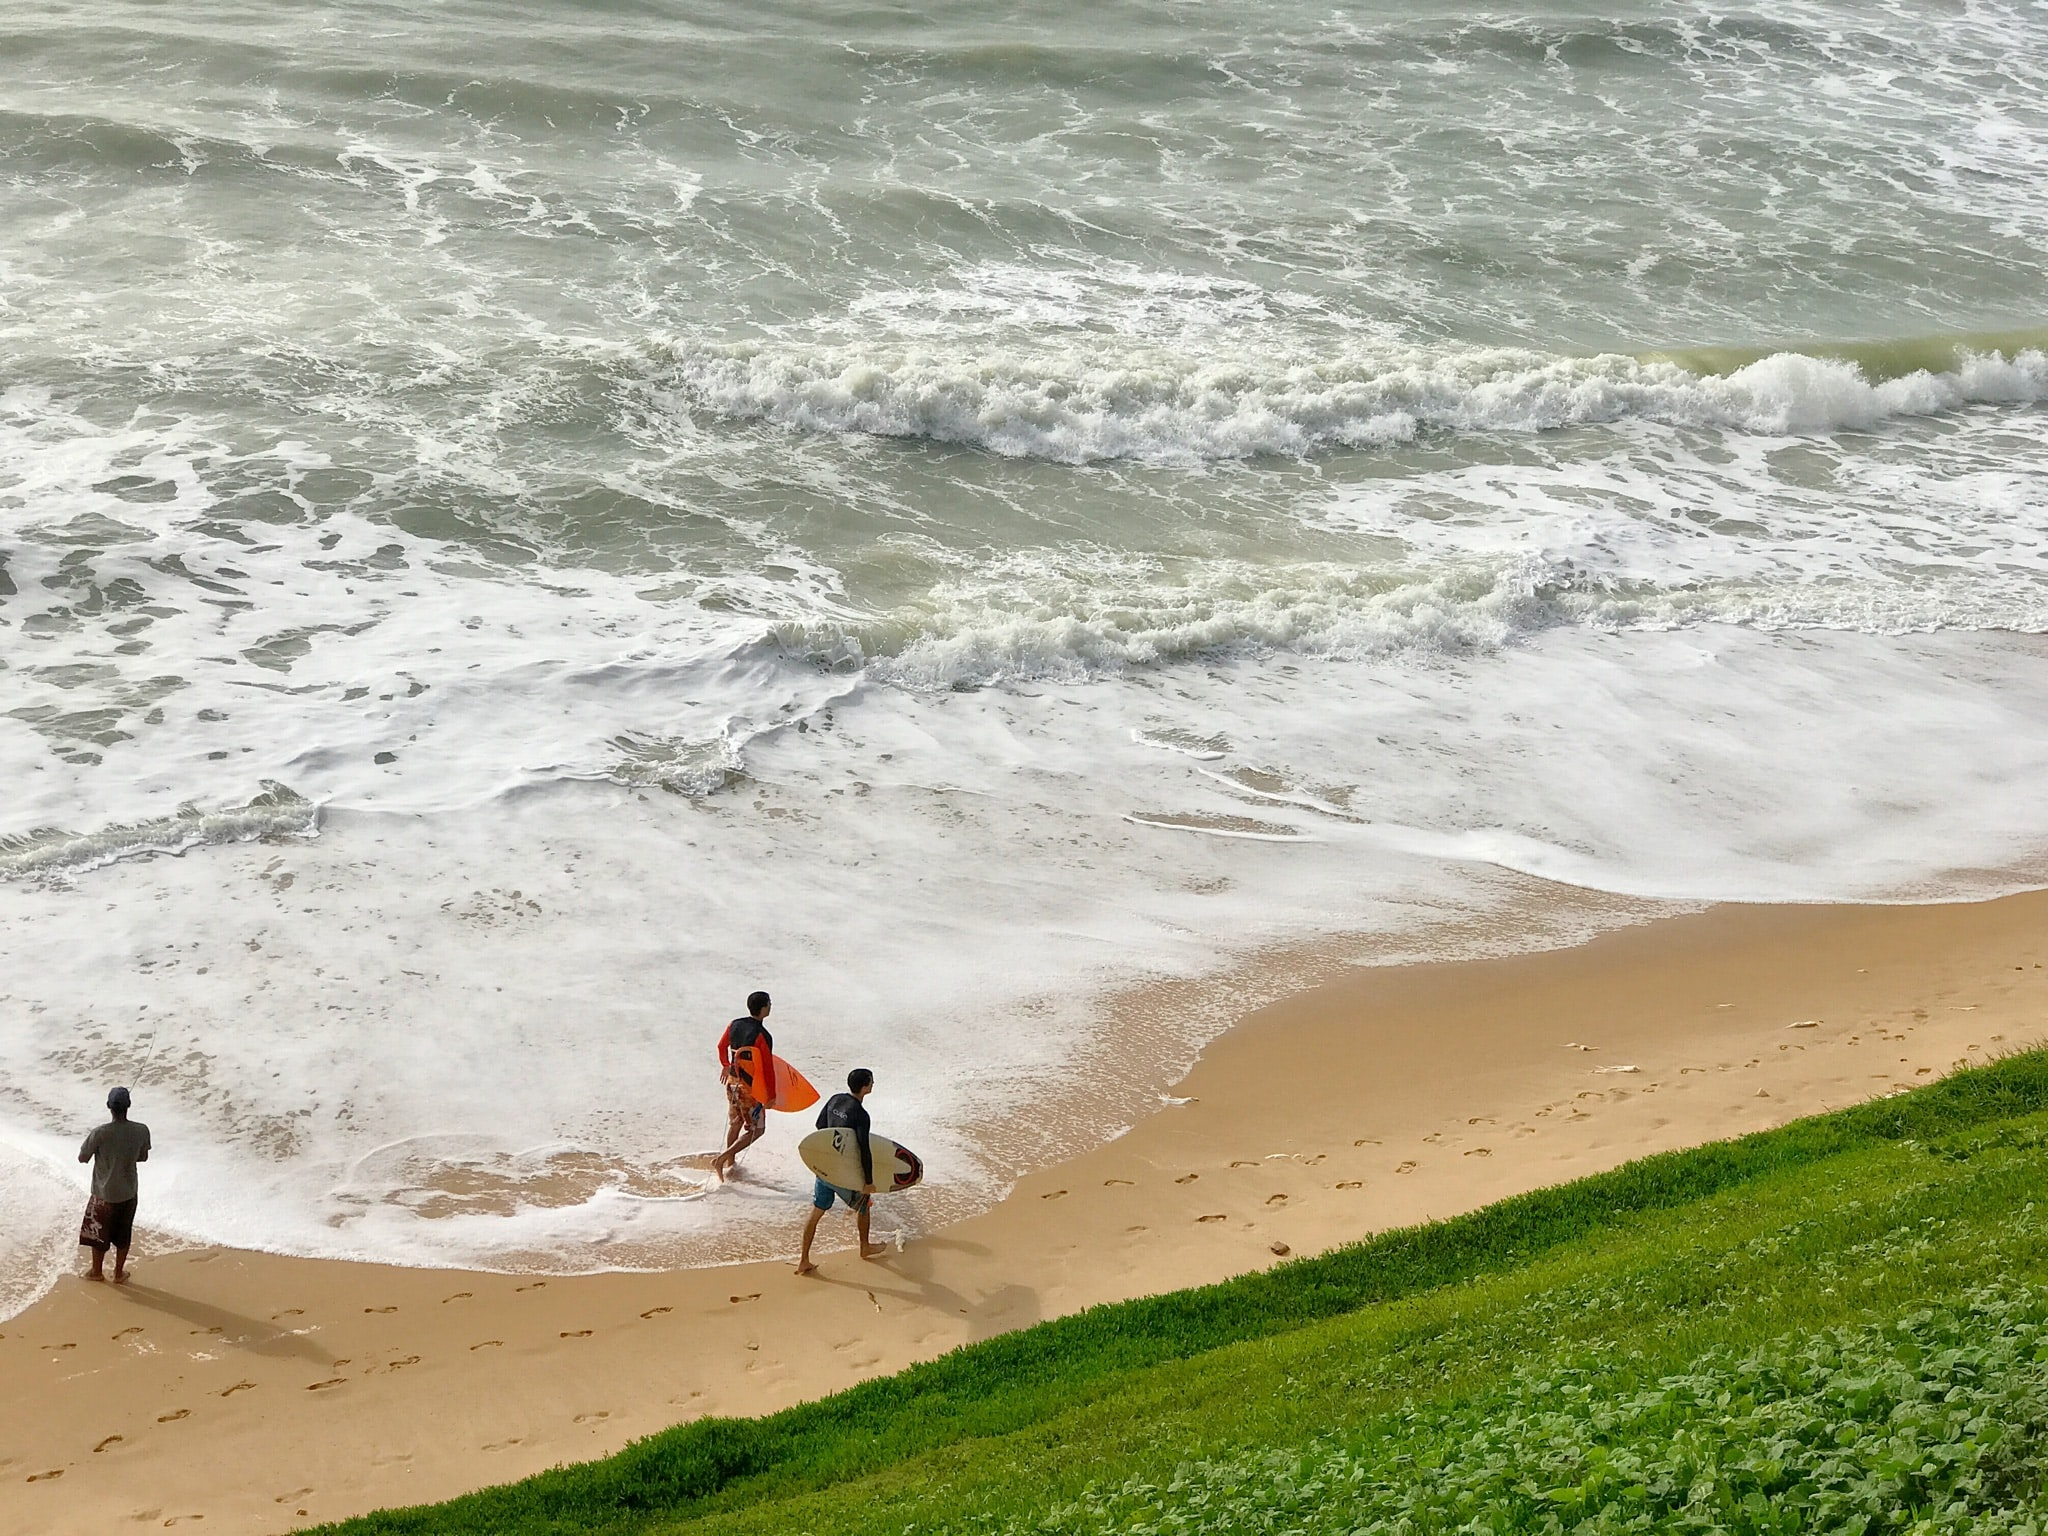 two person holding surfing board while walking on seashore at daytime